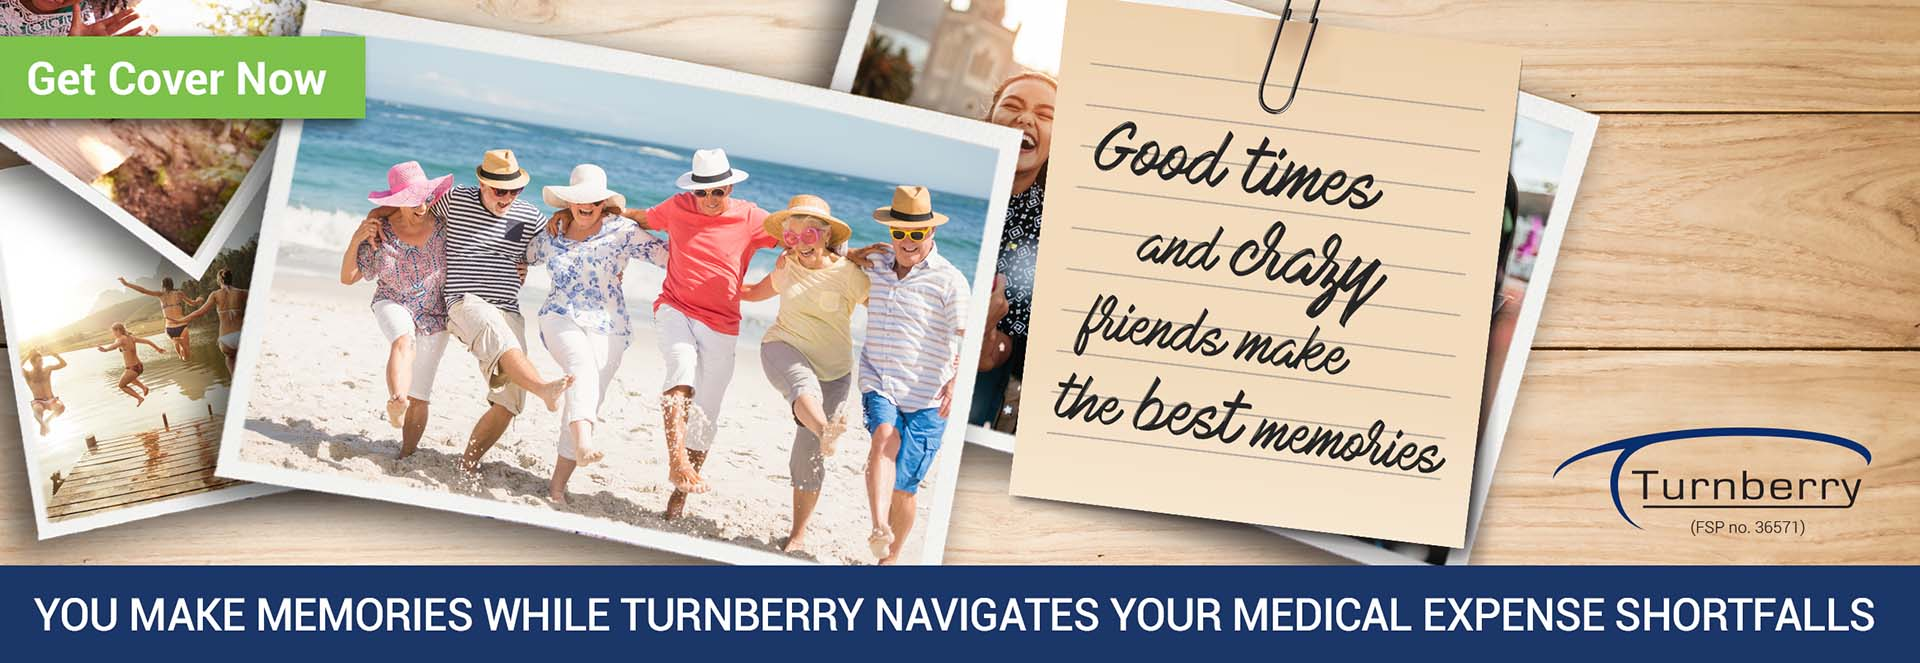 Turnberry Home Slider